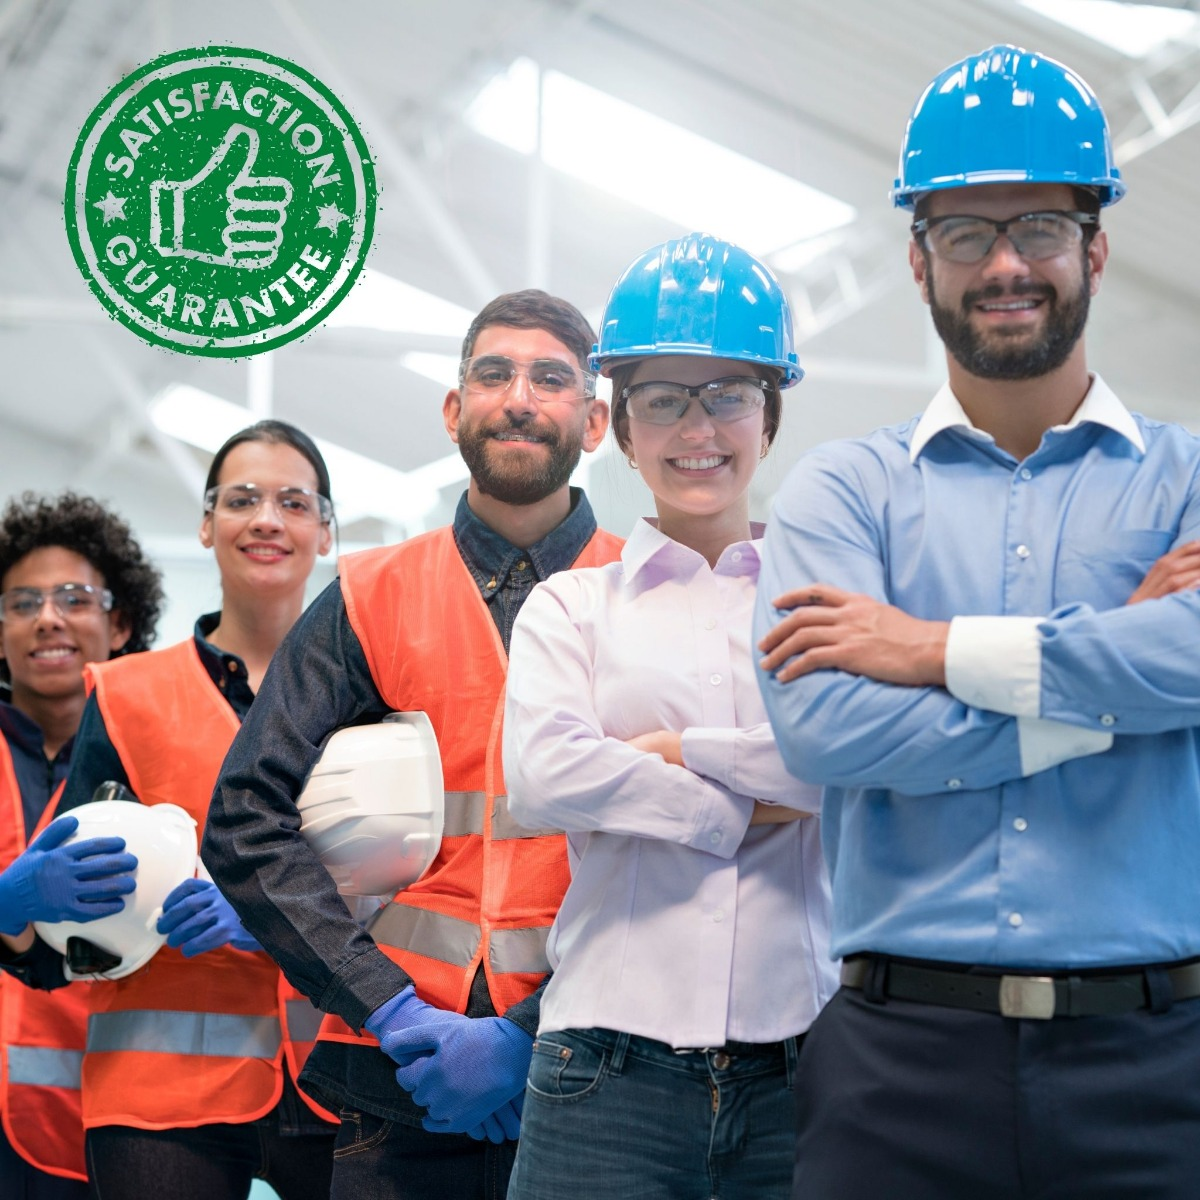 Factory workers with hard hats on showing they can provide satisfaction